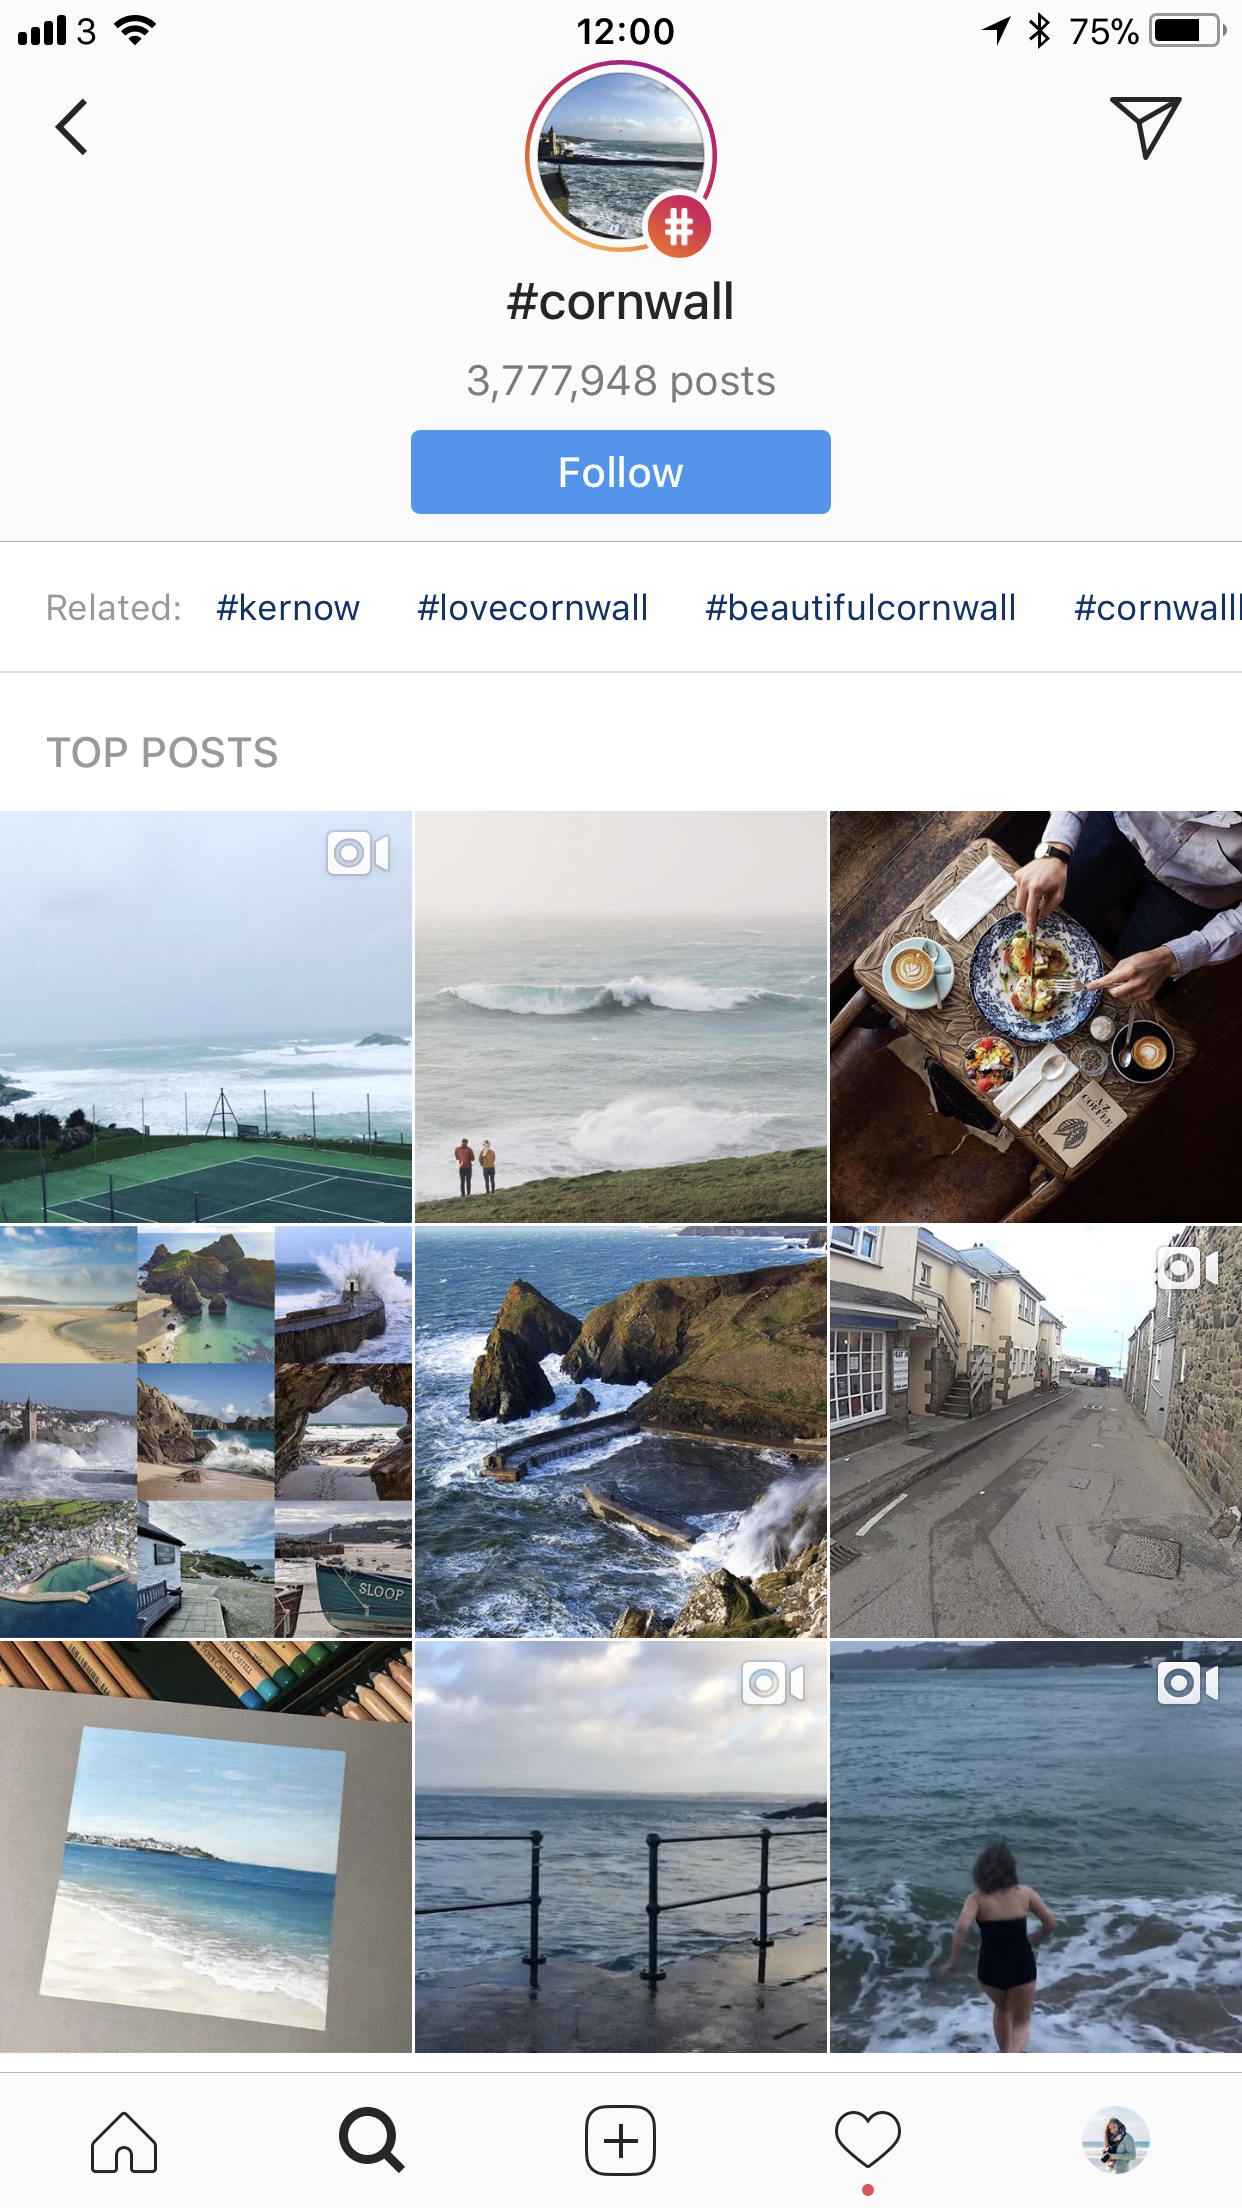 How To Use Hashtags On Instagram and Where To Find Them // www.oliviabossert.com // #hashtags #howtousehashtags #business #entrepreneur #freelancelife #bloggingtips #businesstips #instagramtips #instagramhashtags #besthashtags #cornwall #photographercornwall